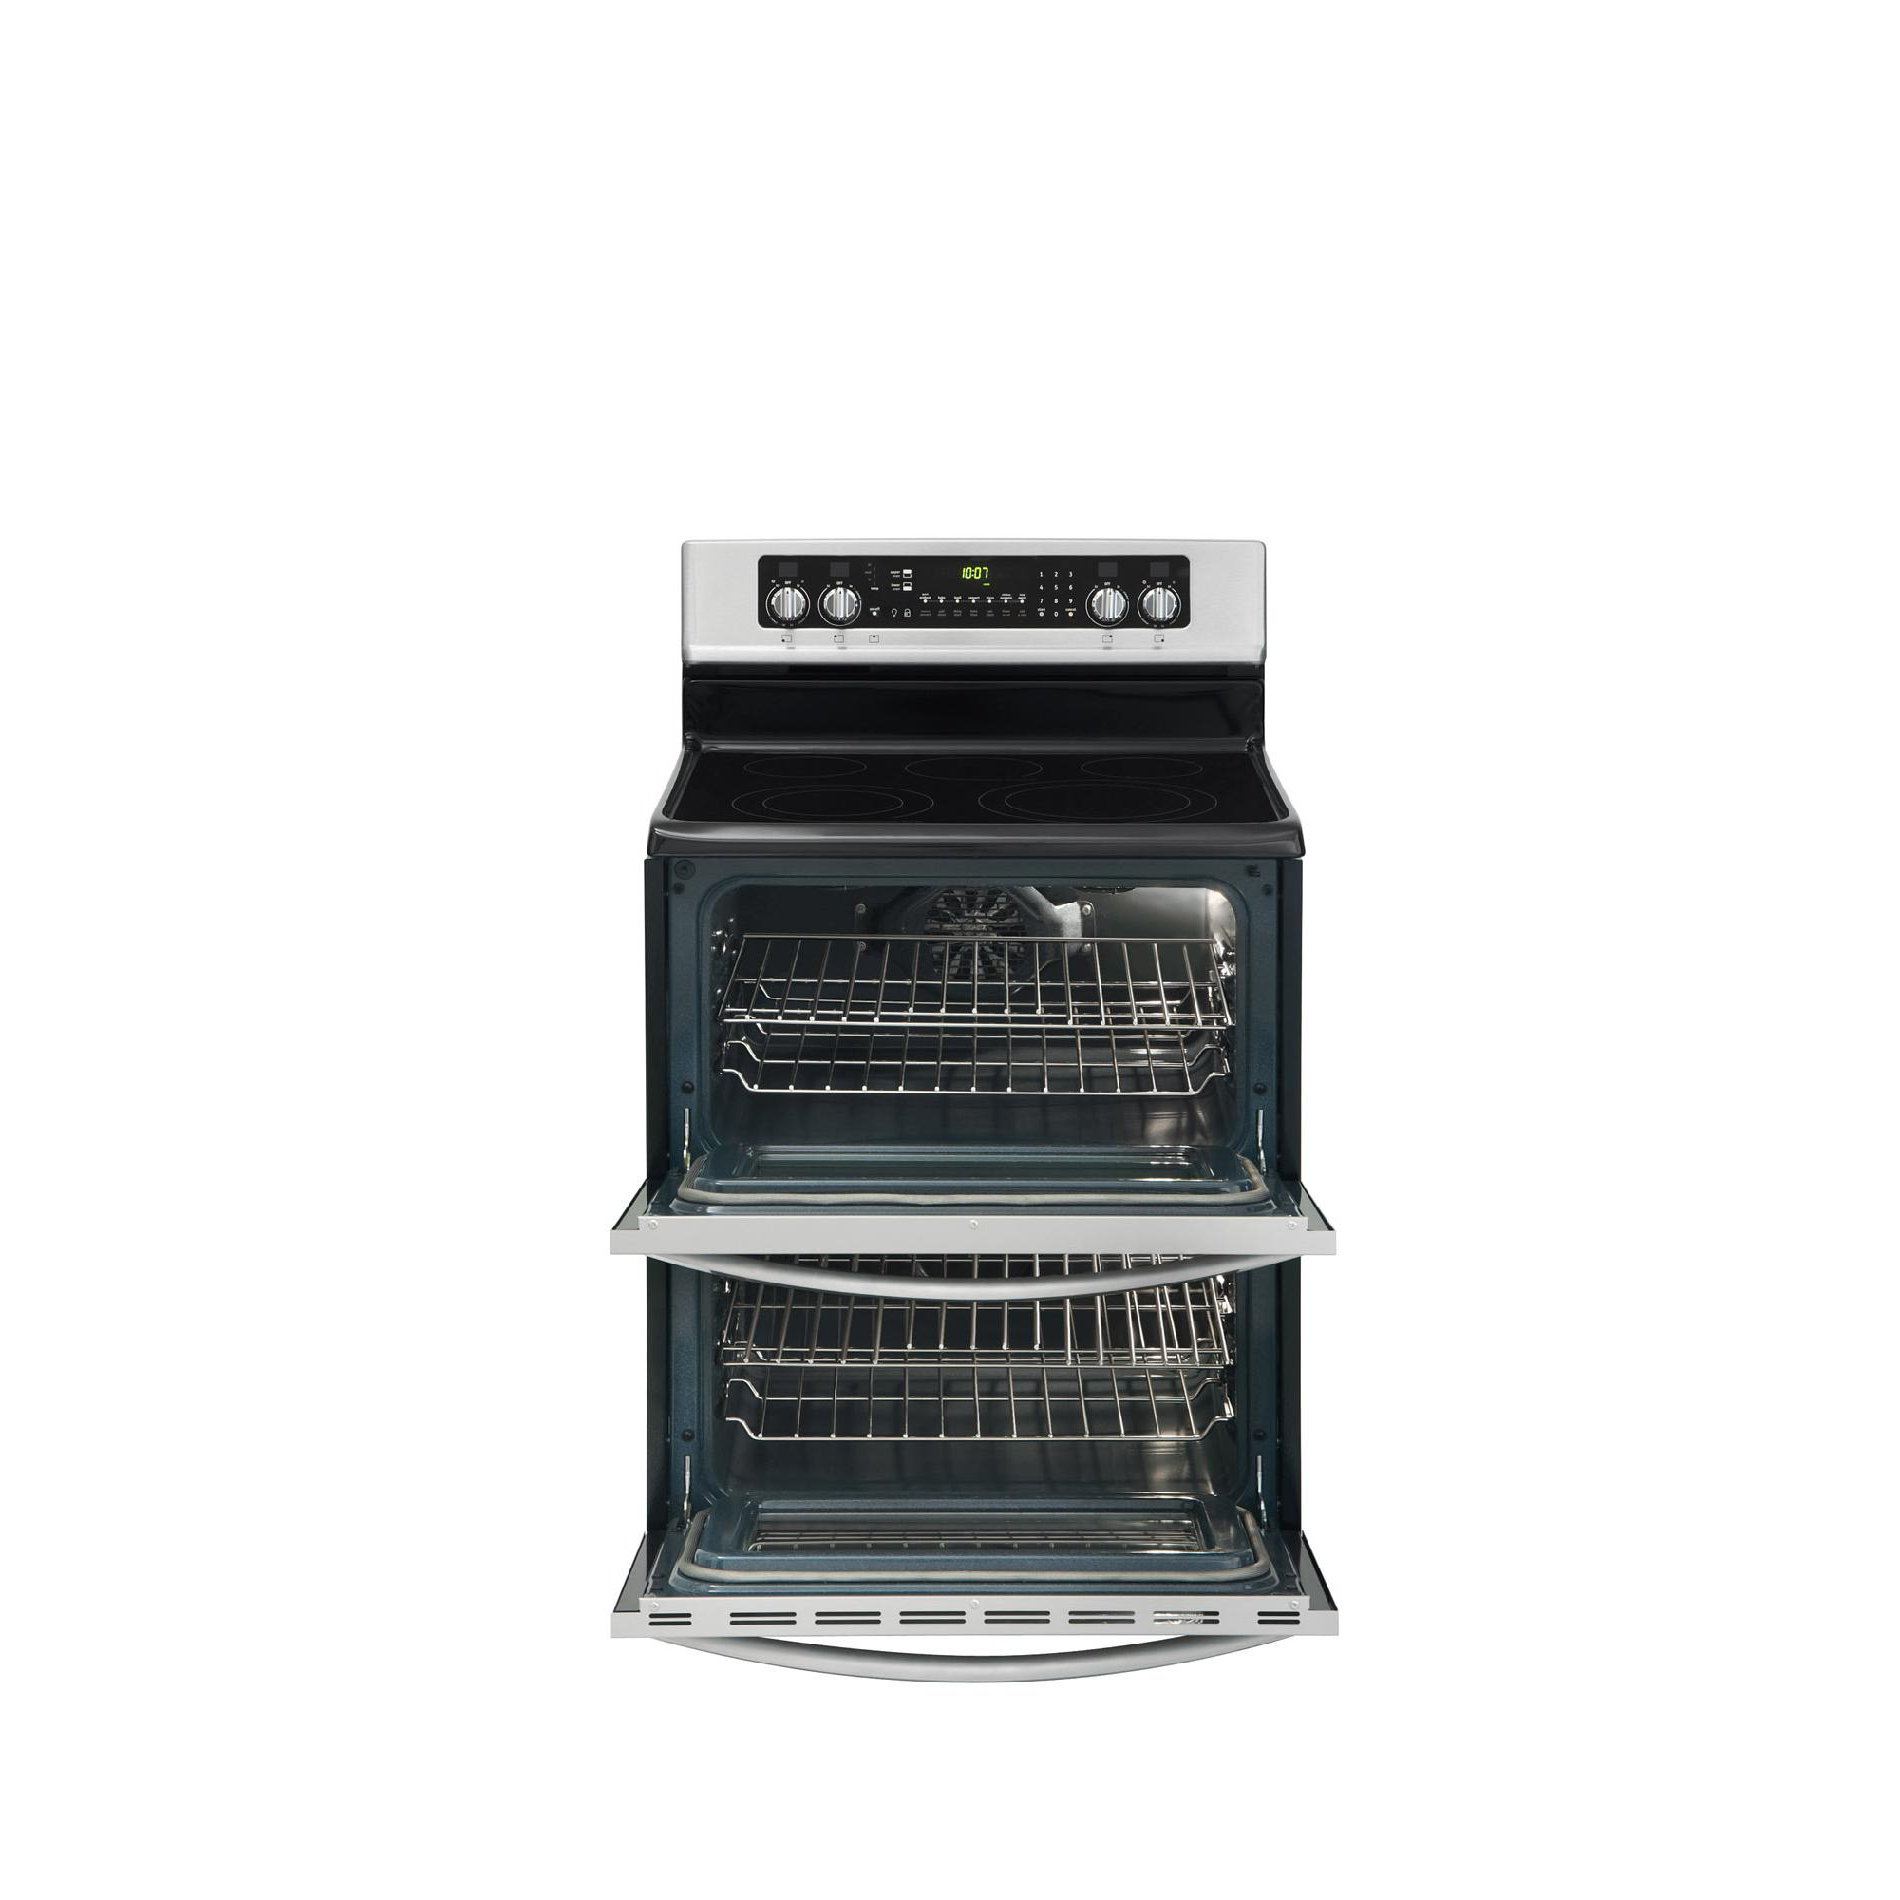 Frigidaire Gallery Gallery 7 cu. ft. Double-Oven Electric Range - Stainless Steel